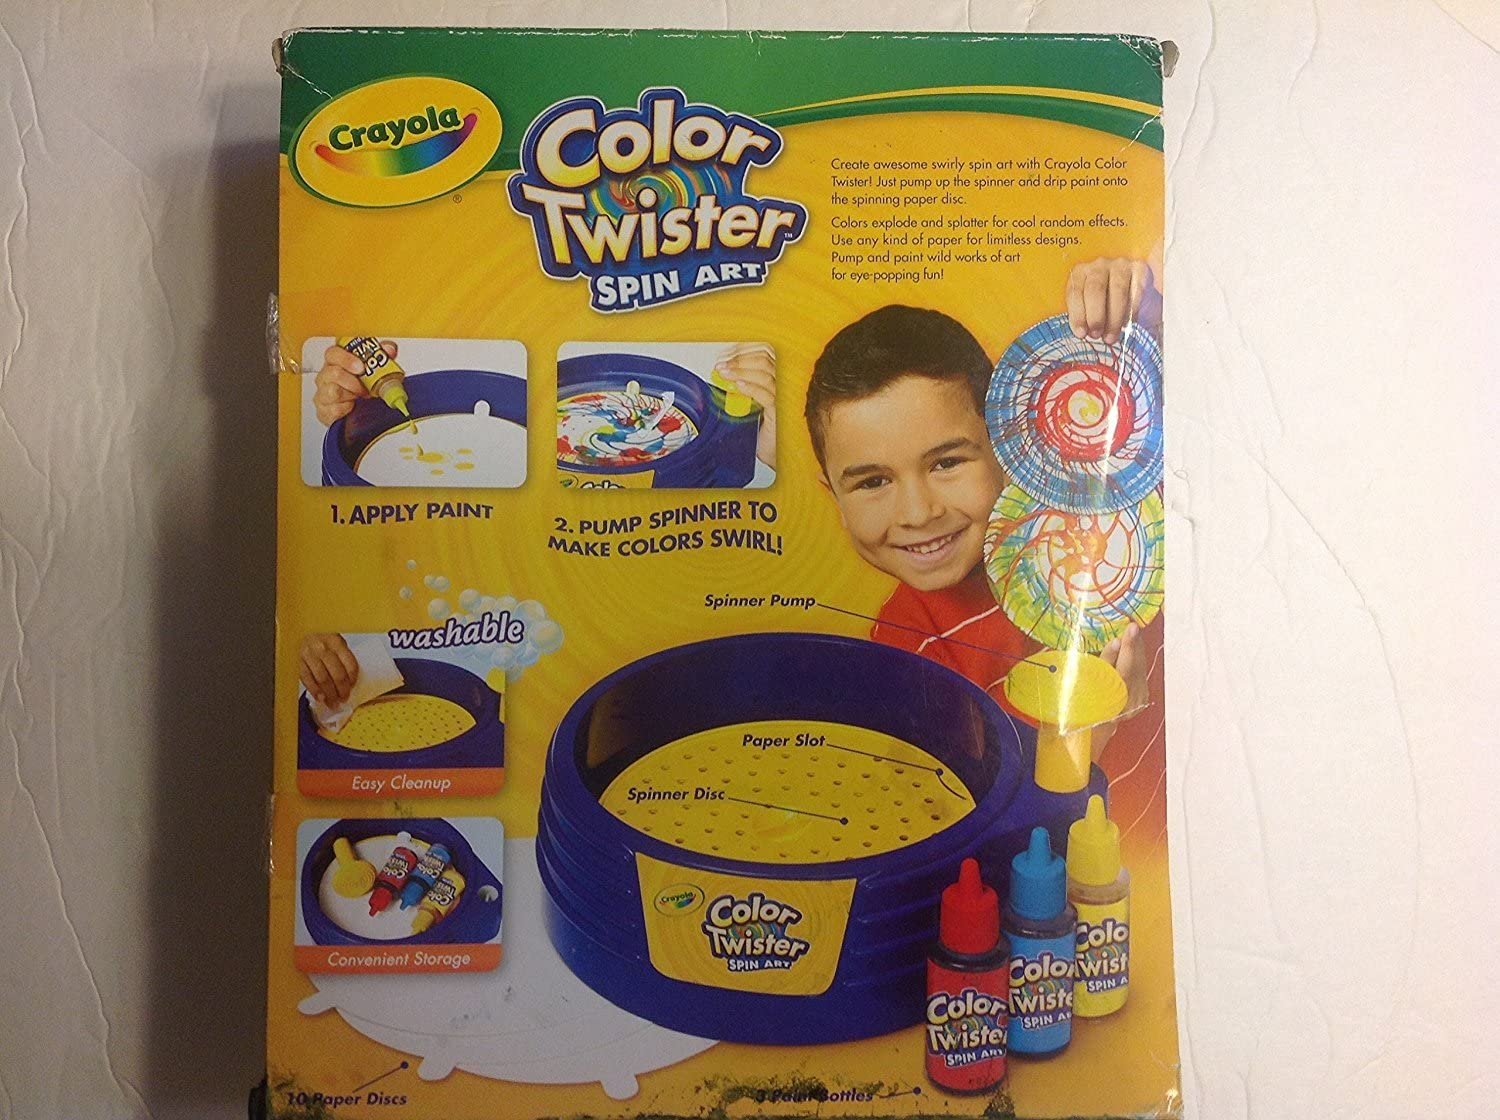 Barbie Doll 1:6 Miniature Toy Crayola Color Twister Spin Art for Toyroom